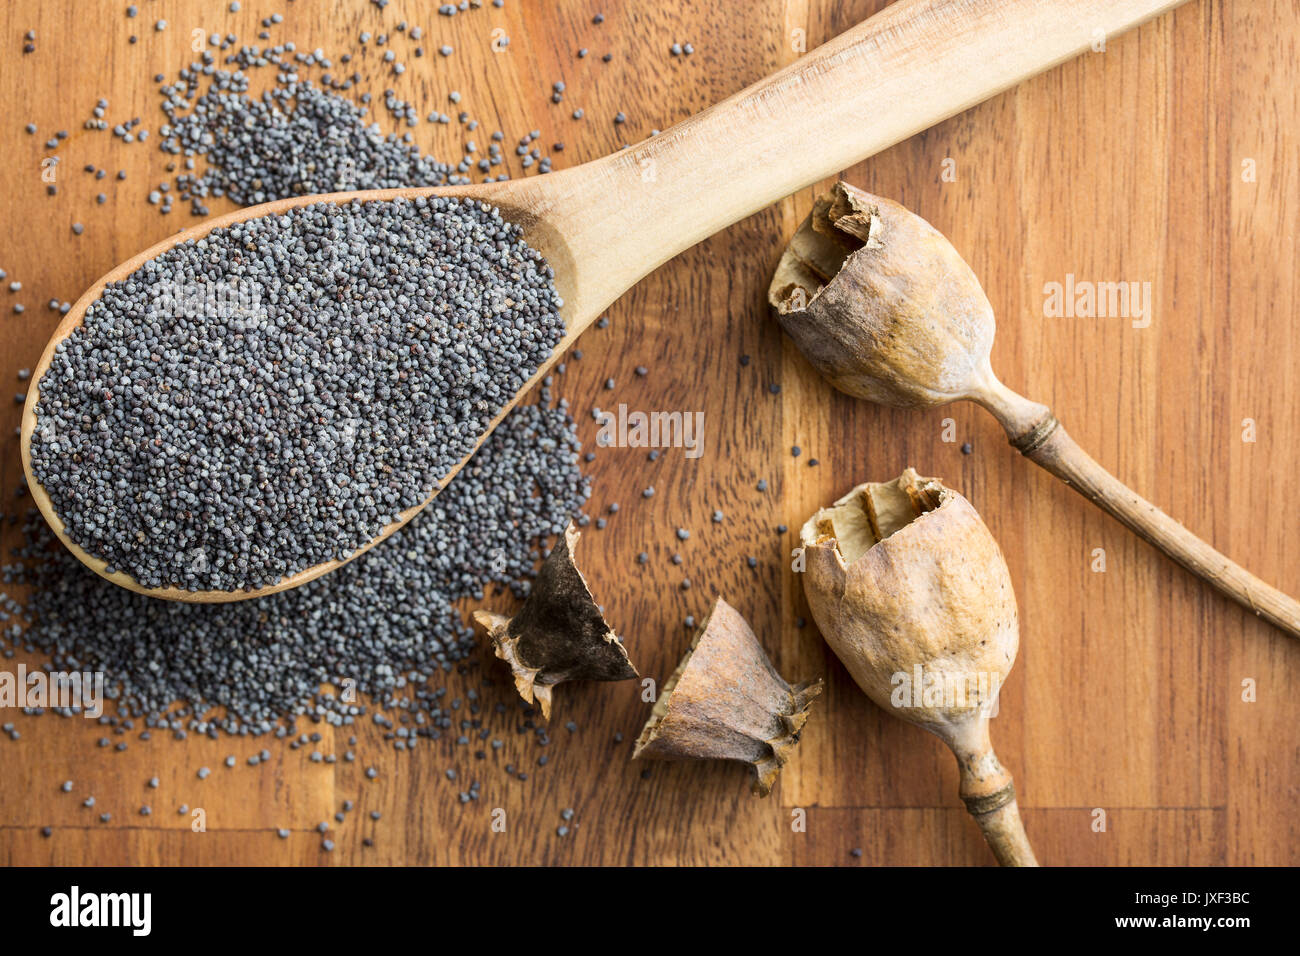 Dried poppy heads and seeds. Blue poppy. Top view. - Stock Image